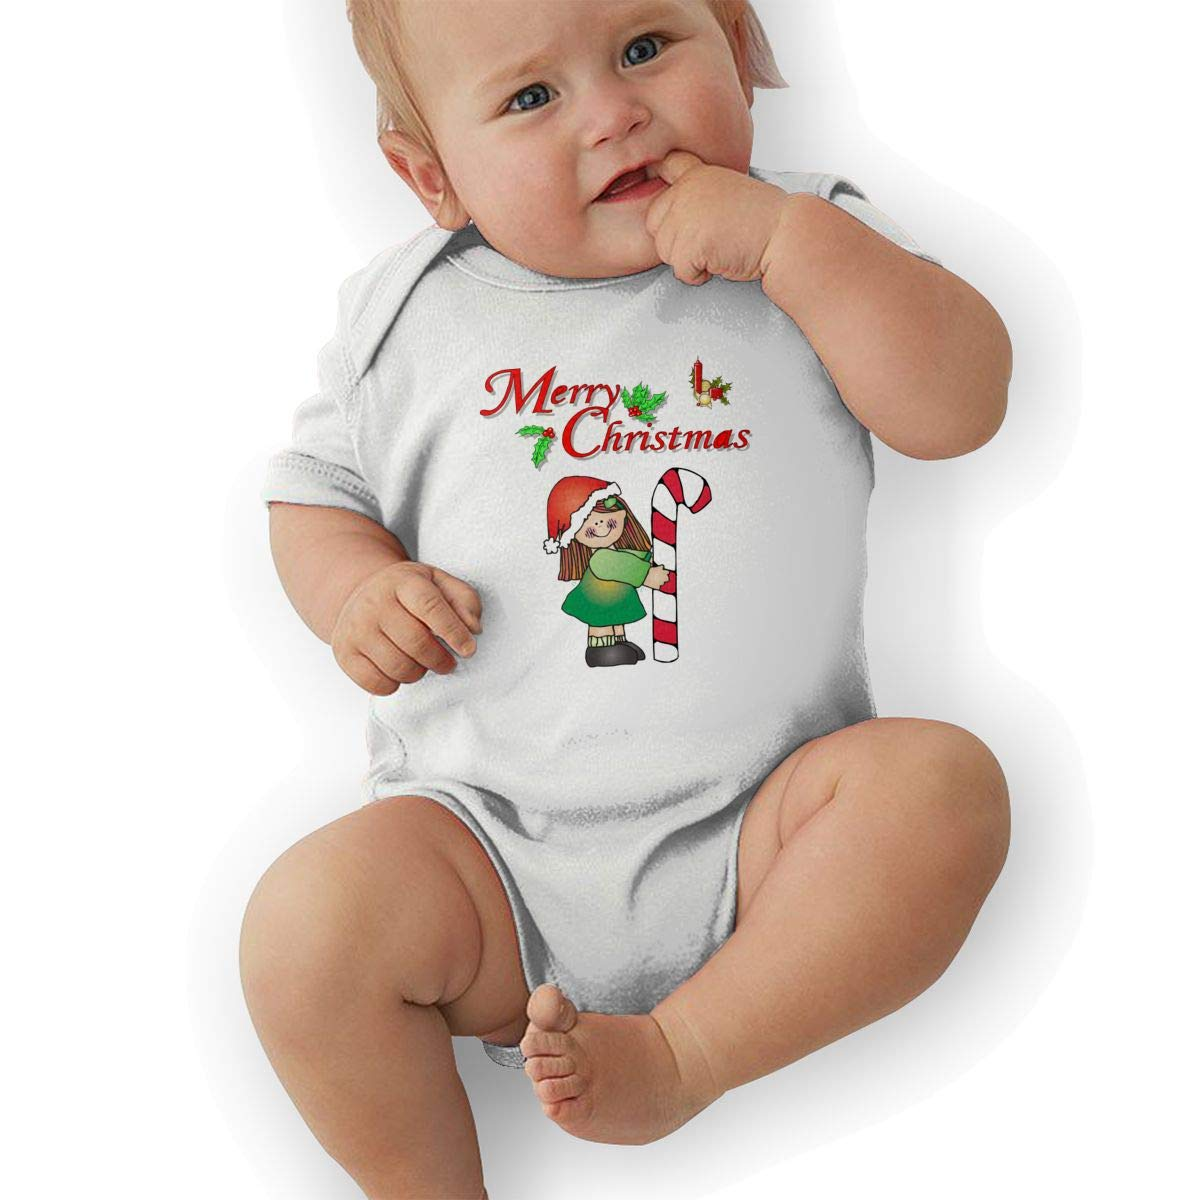 Infant Baby Boys Bodysuit Short-Sleeve Onesie Christmas Girl Candy Cane Print Jumpsuit Autumn Pajamas